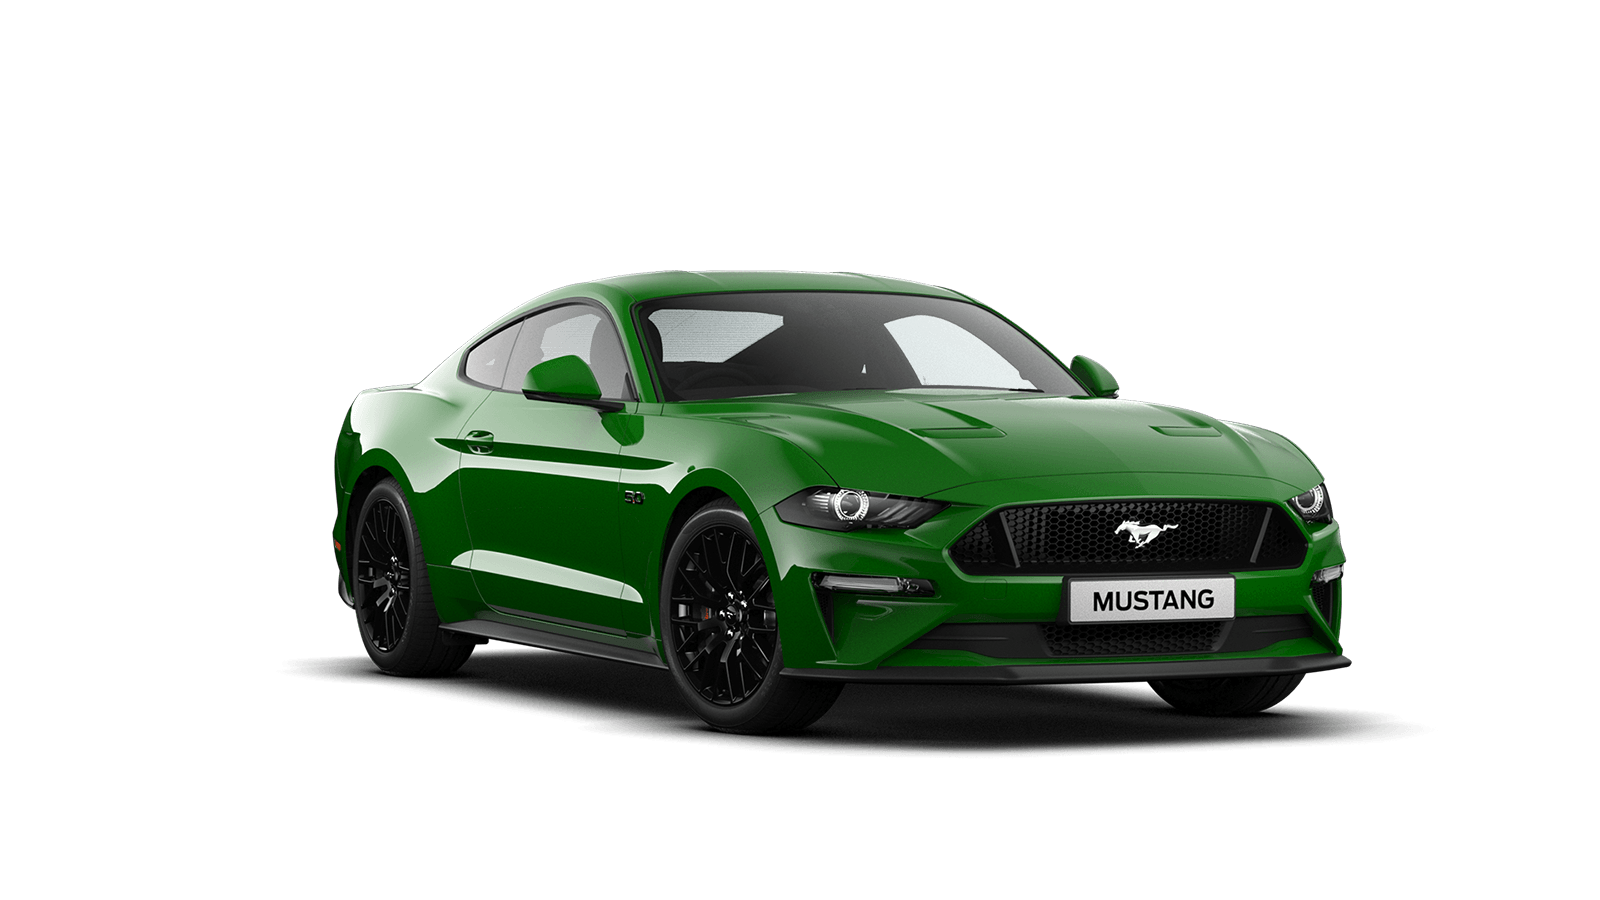 https://www.dealerinternet.co.uk/images/MUSTANG/2019/Fastback/5.0V8GT/NEED-FOR-GREEN.png